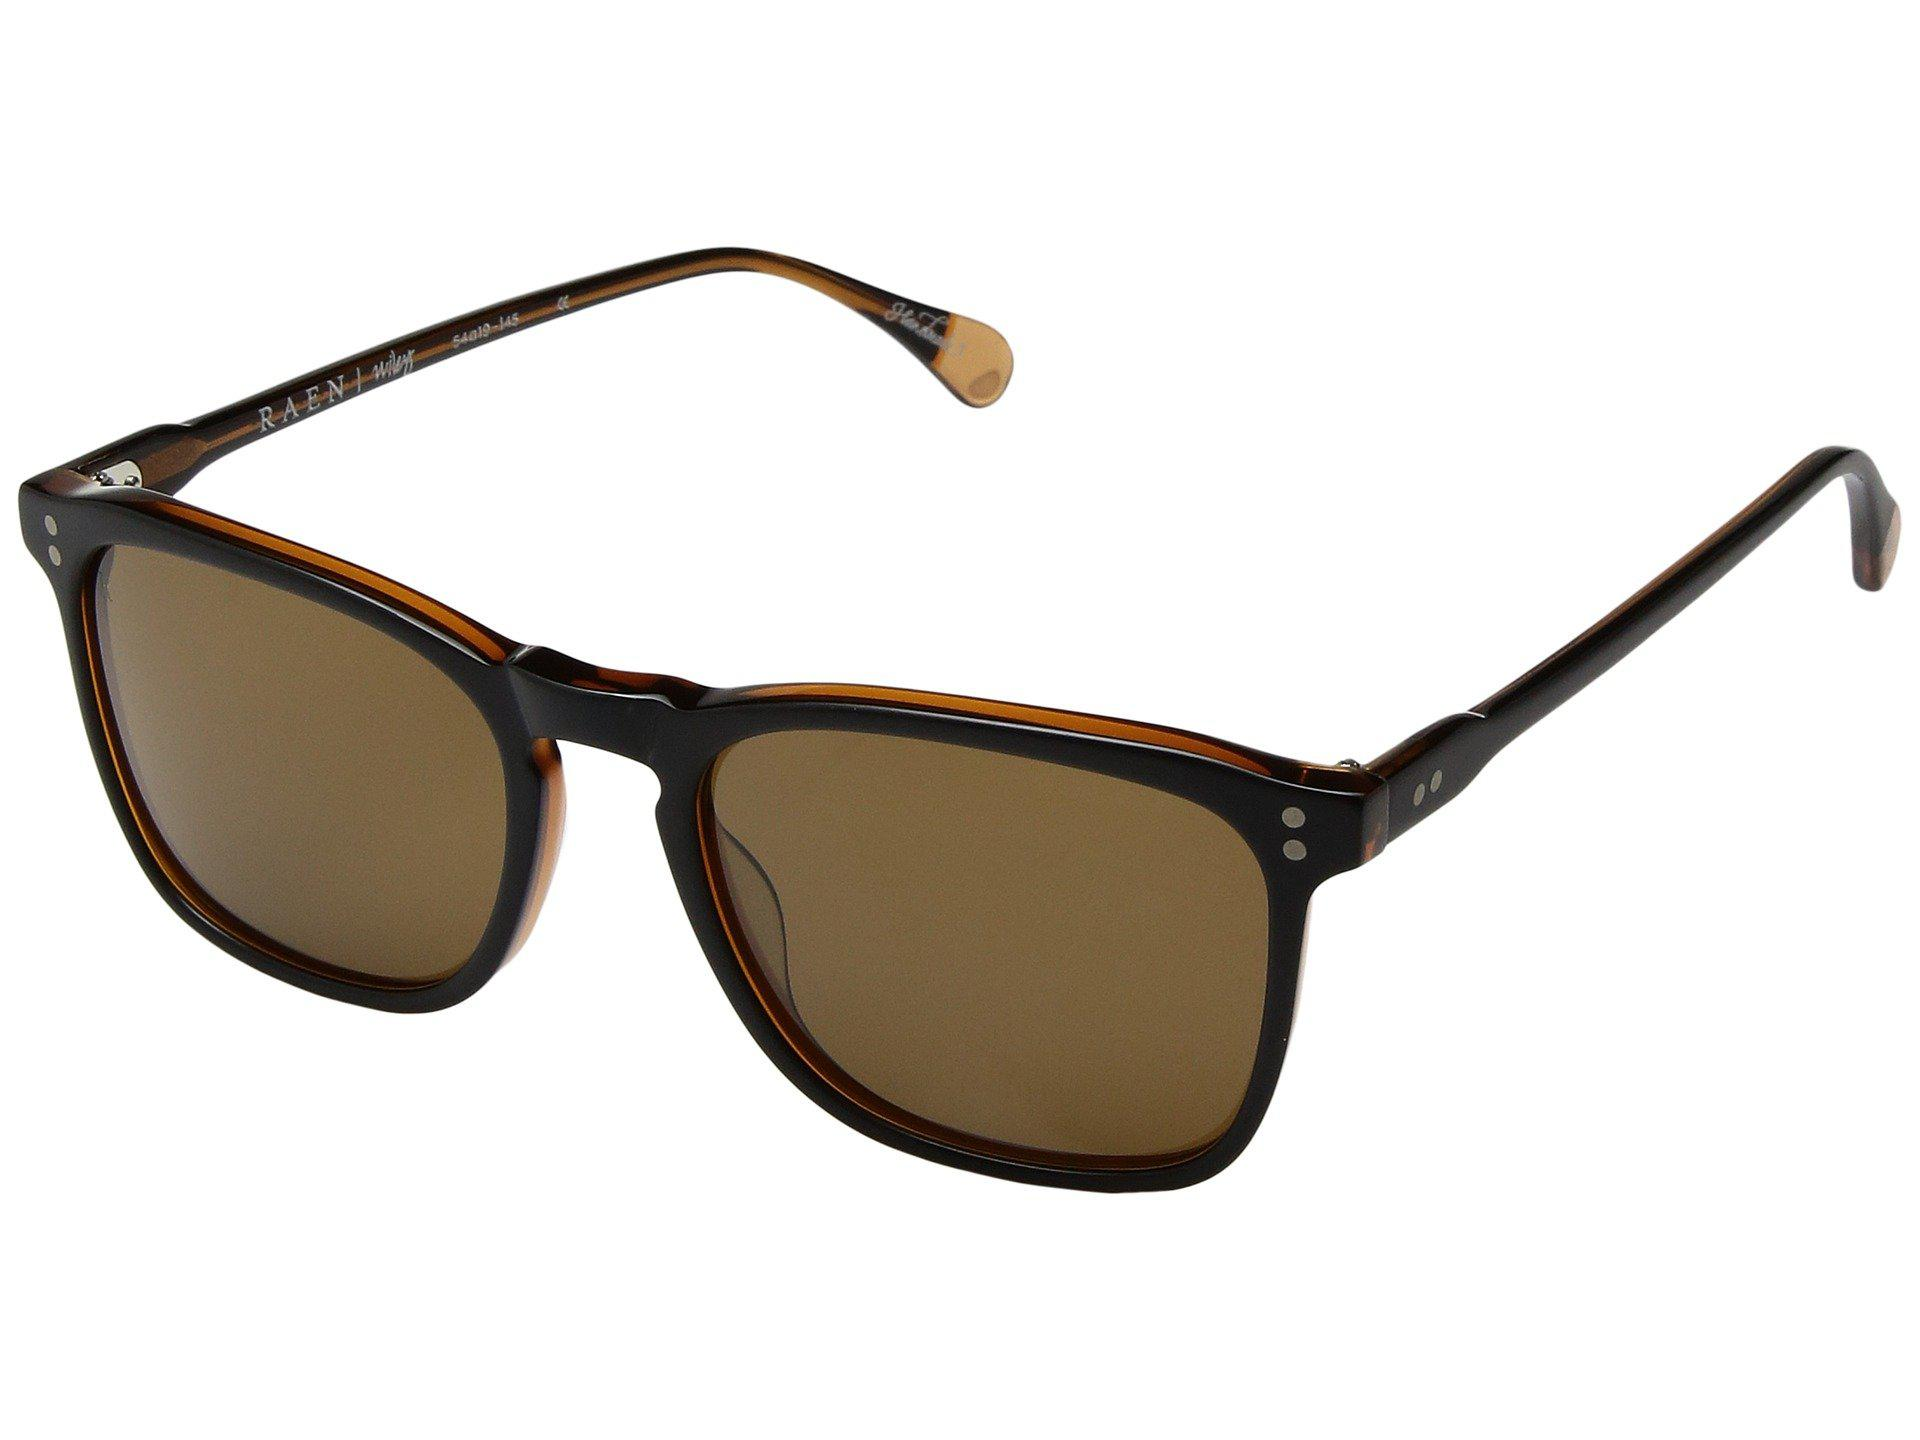 b37f661ad20 Raen. Men s Brown Wiley (tokyo Tortoise Bronze Polarized) Polarized Fashion  Sunglasses